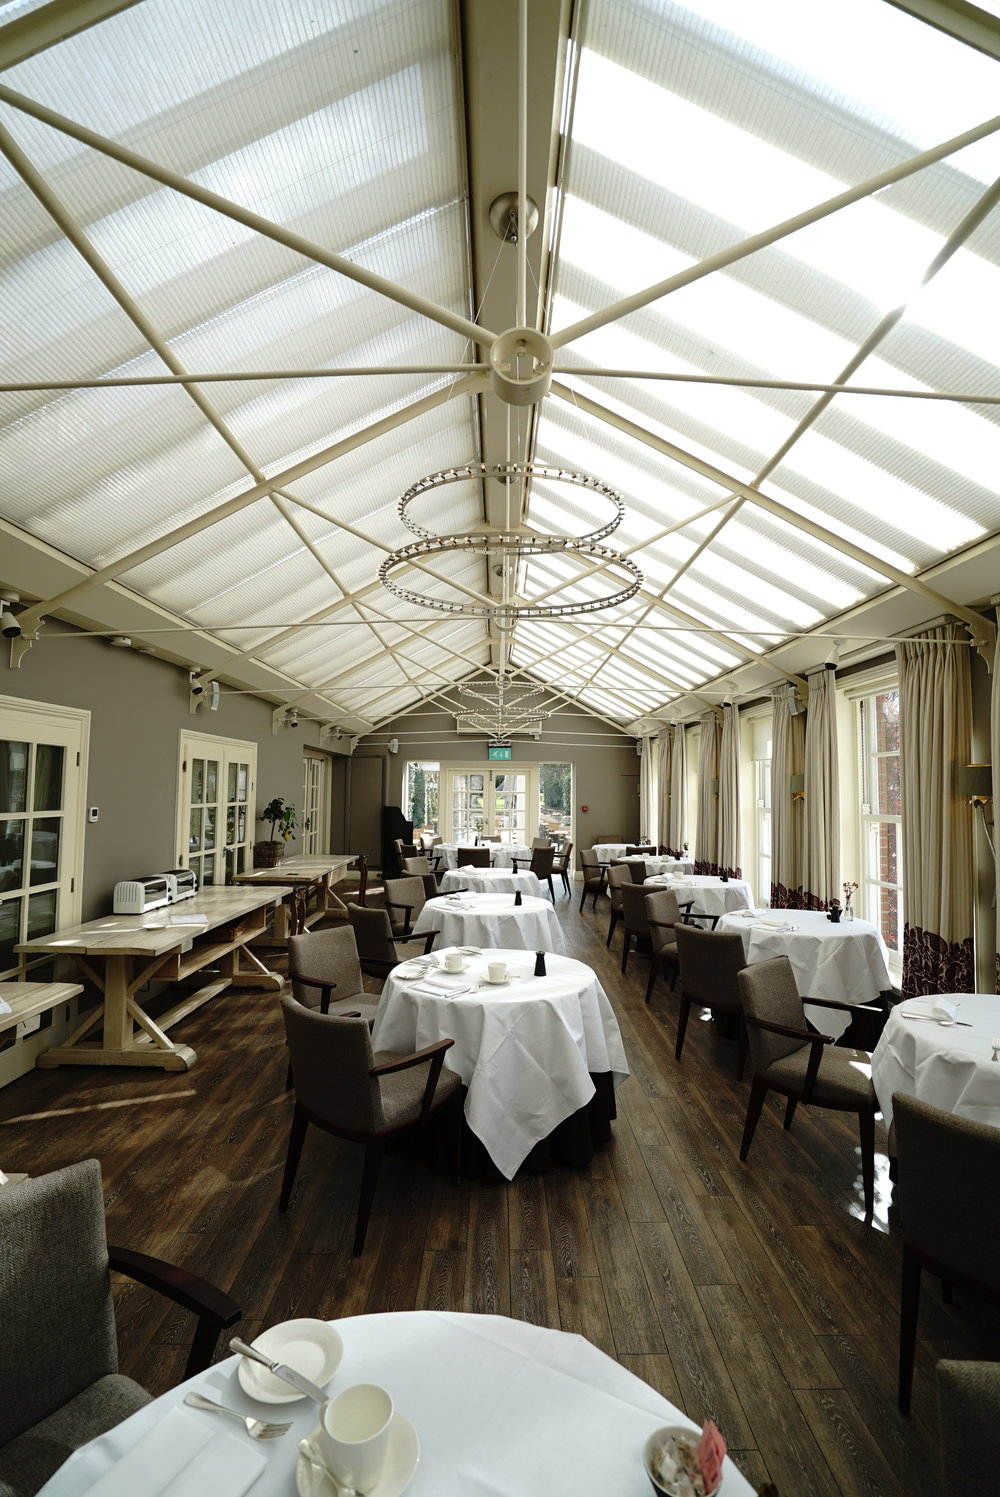 Chewton Glen Dining Event Area.JPG